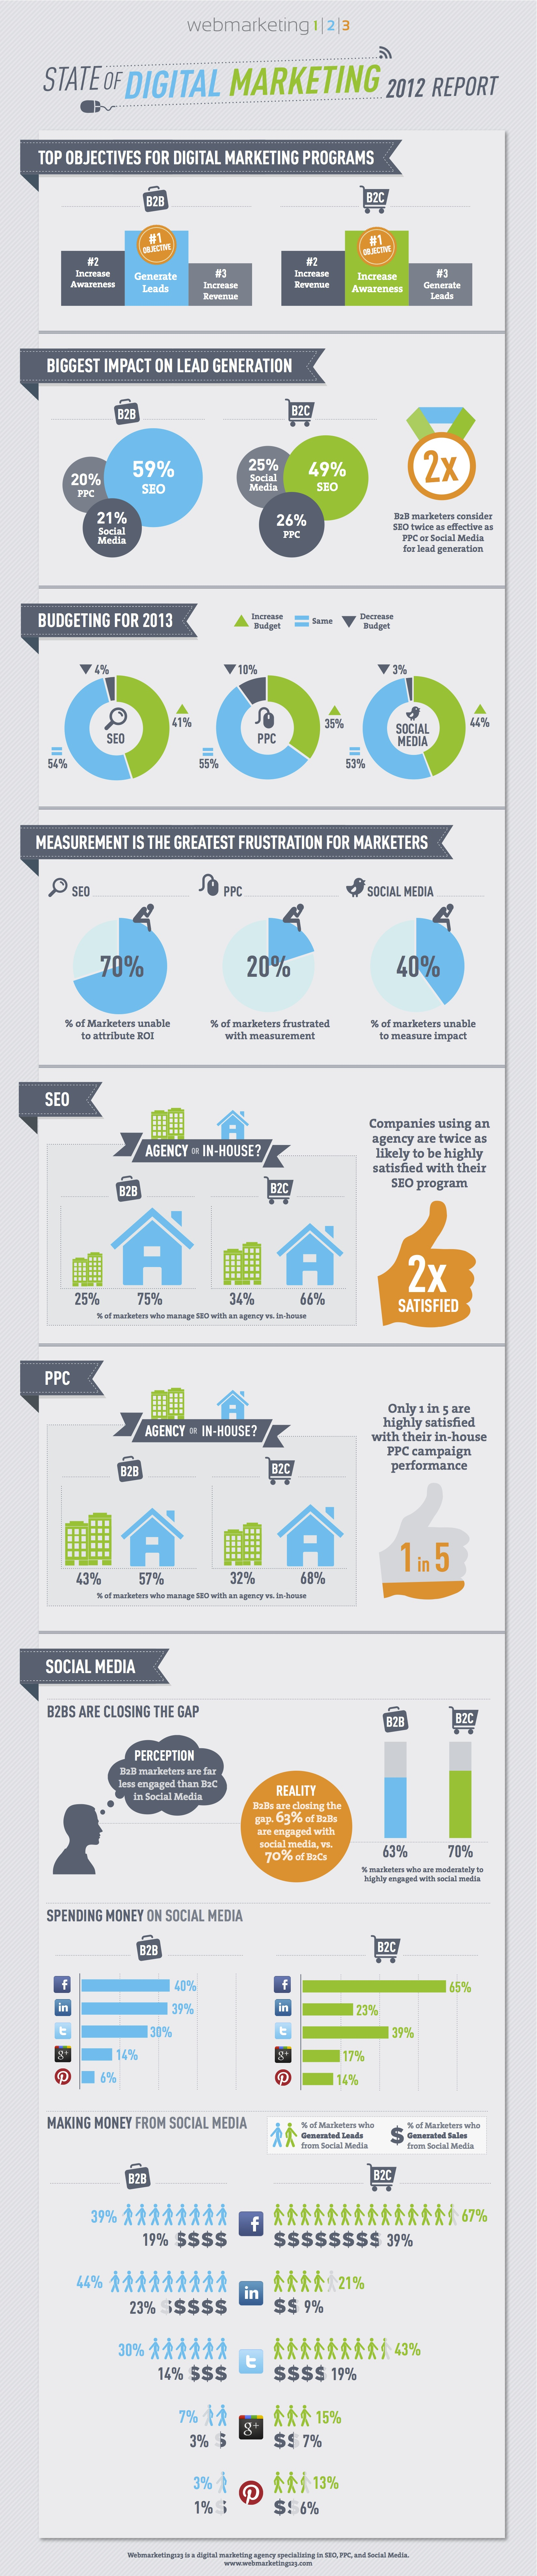 The State Of Digital Marketing B2b Marketers Vs B2c Marketers Infographic